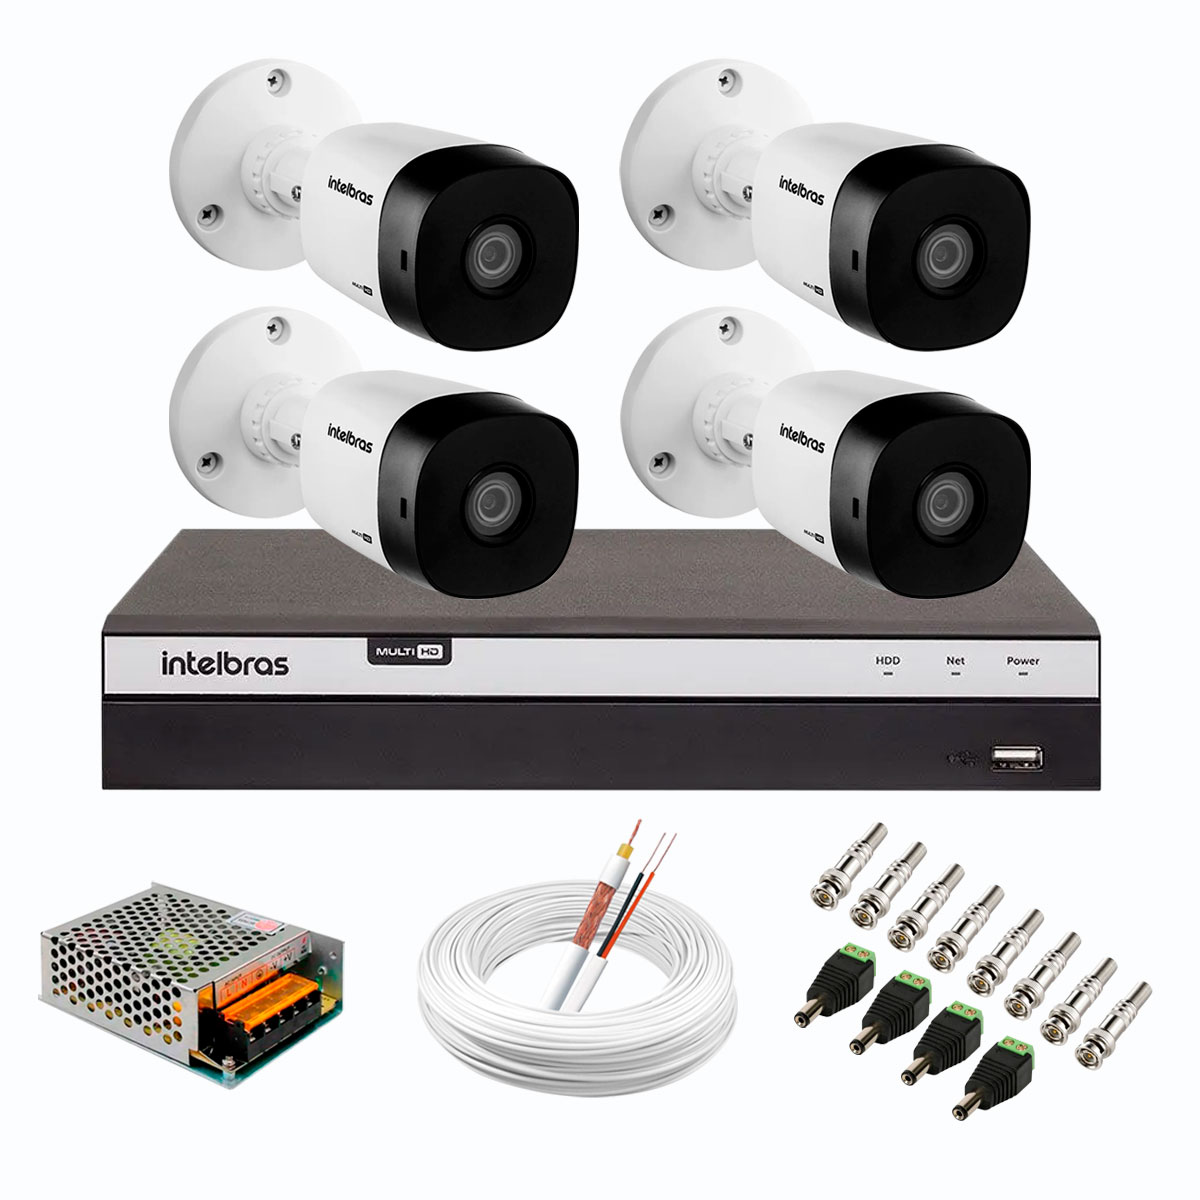 kit-4-cameras-de-seguranca-full-hd-intelbras-vhd-1220-b-g6-dvr-intelbras-full-hd-mhdx-3108-de-8-canais-acessorios